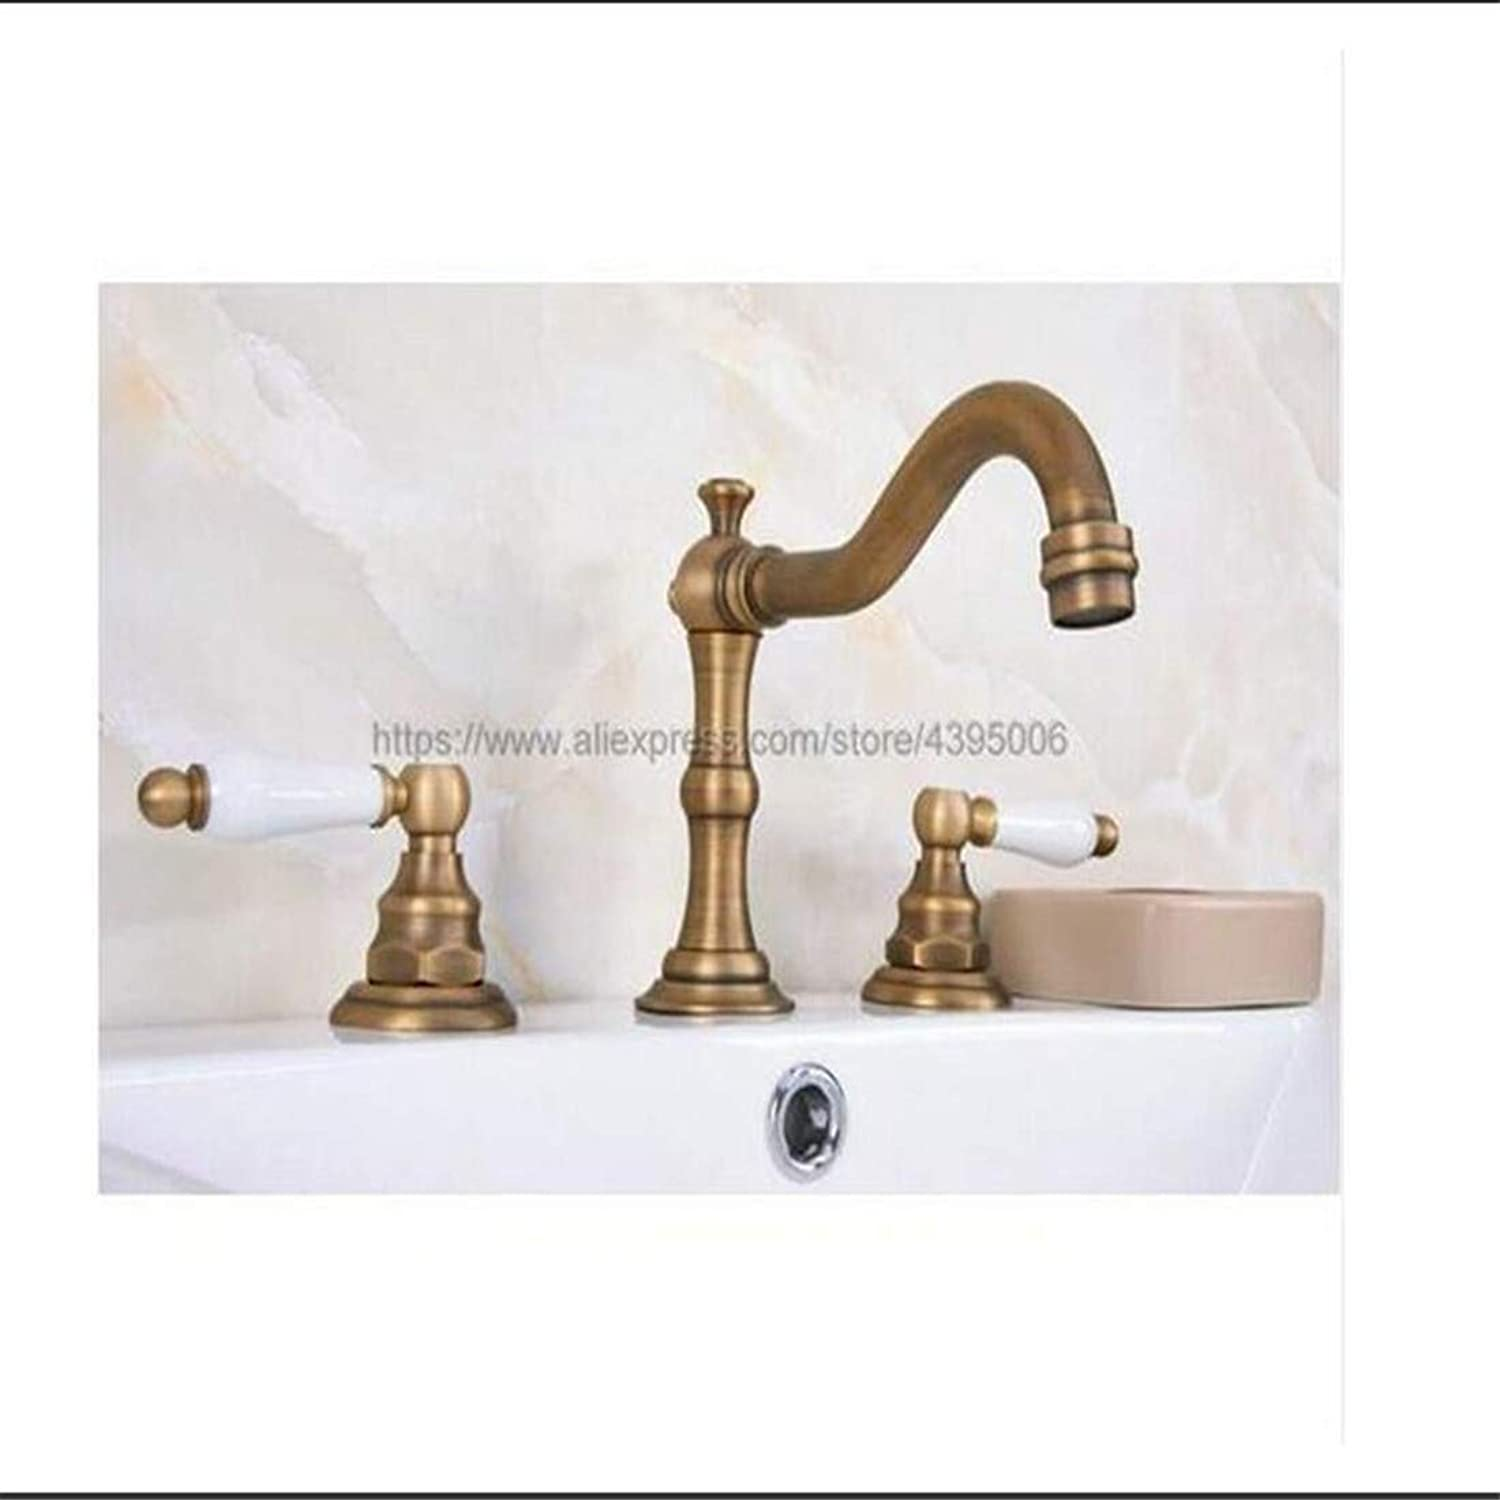 Vintage Brass Hot and Cold Water Mixer Taps Dual Handles Deck Mounted 3 Holes Basin Sink Faucet